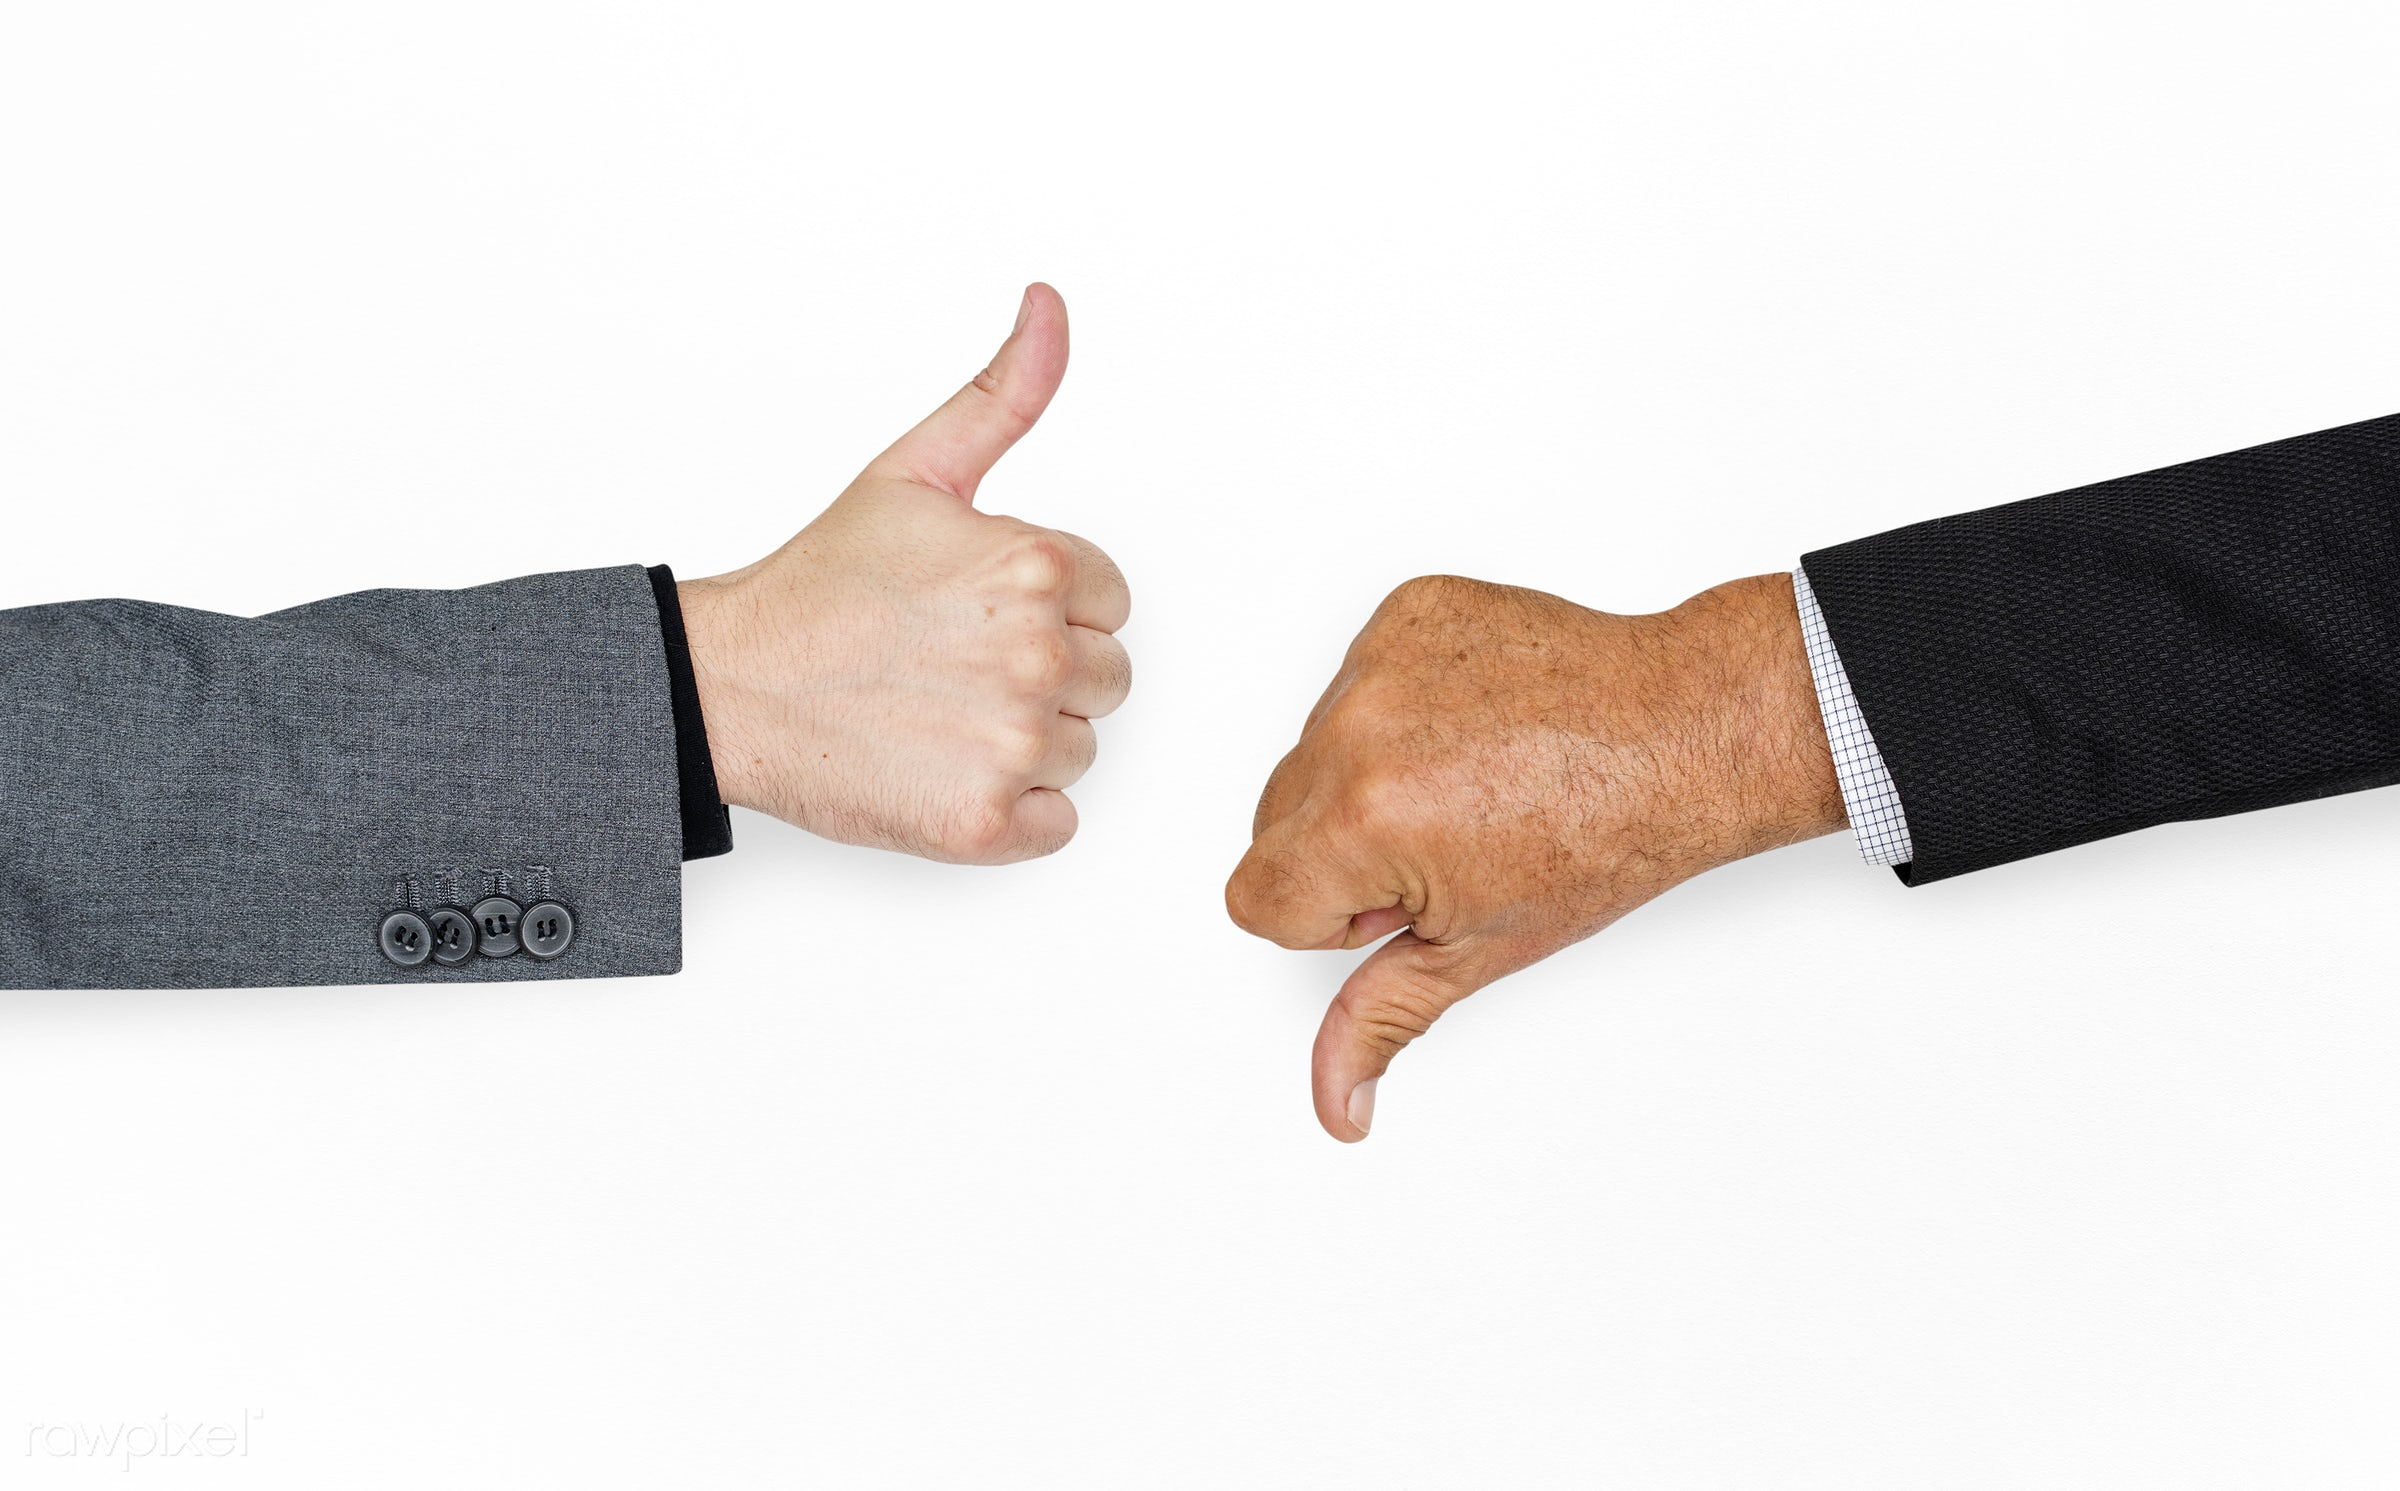 agreement, approve, awesome, awful, background, bad, best, conflict, cool, disagree, dislike, emotion, emotional, excellent...